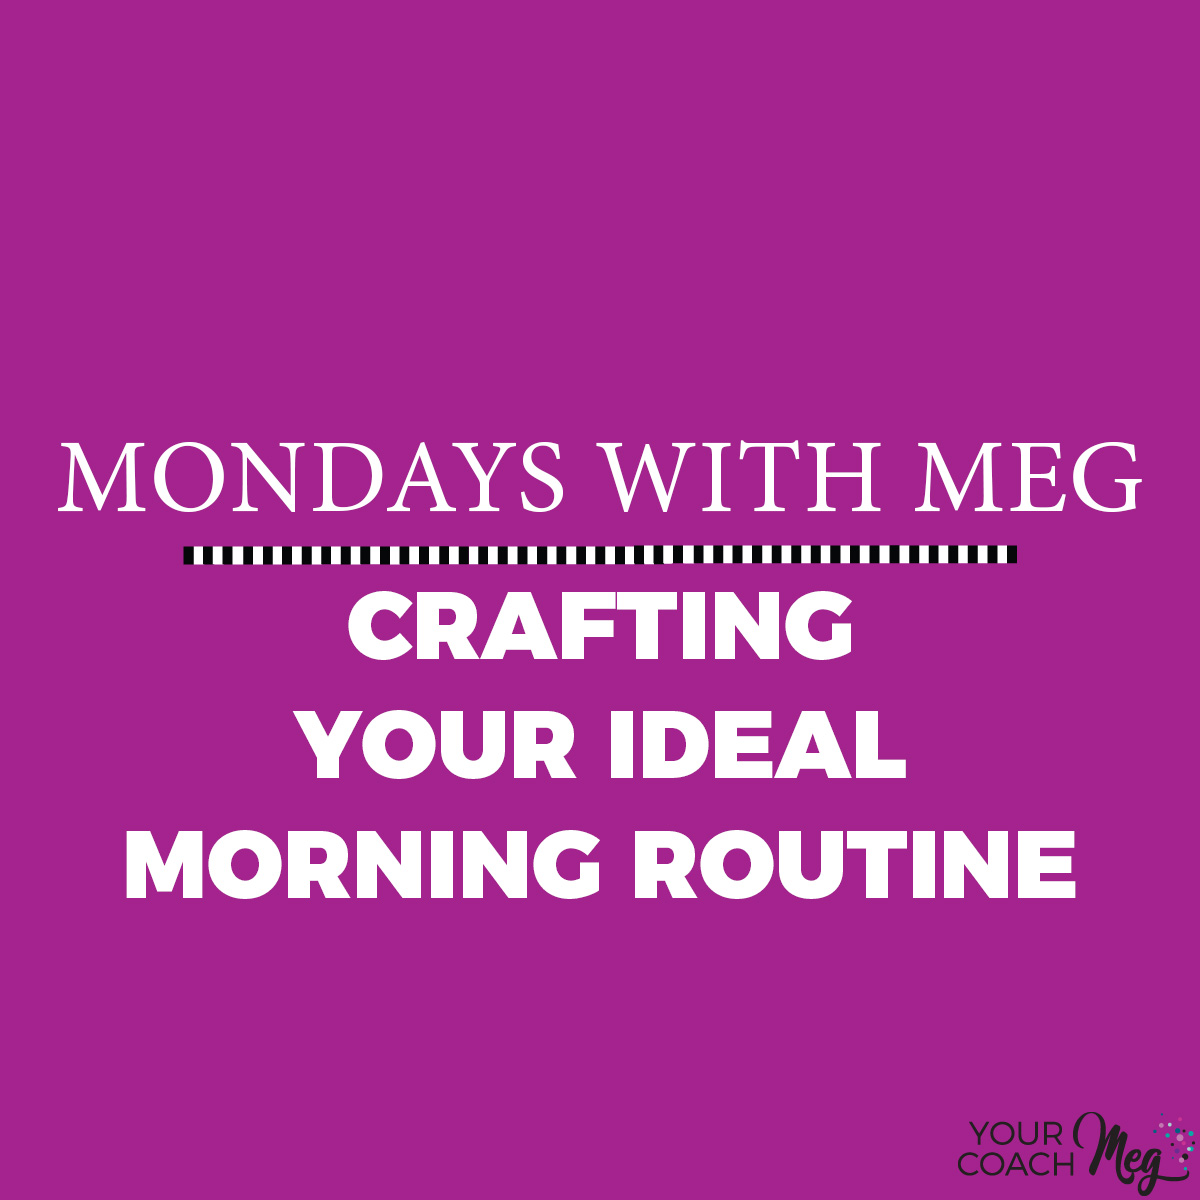 Mondays With Meg: CRAFTING YOUR IDEAL MORNING ROUTINE with free worksheet!